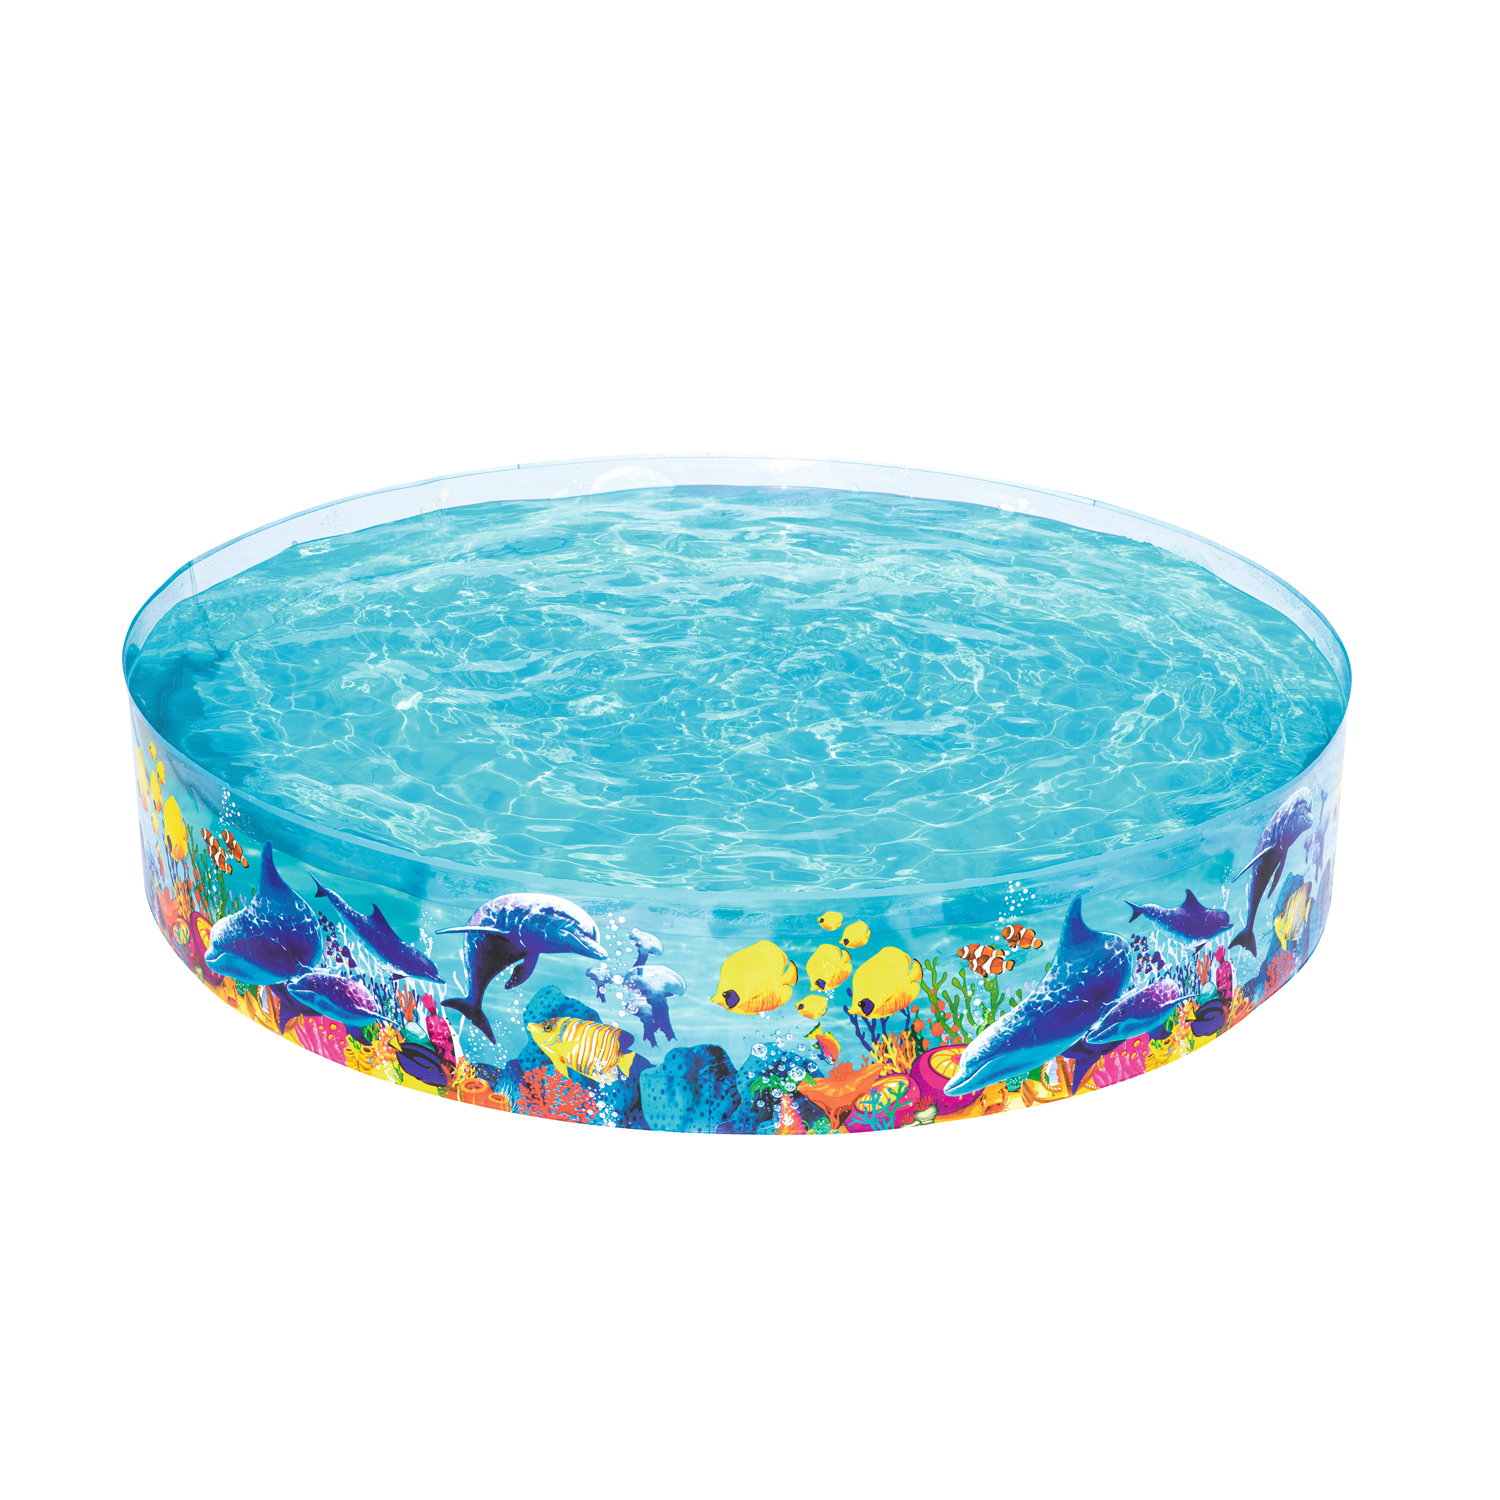 "H2OGO! Fill-n-Fun Odyssey Kiddie Play Pool, 96"" x 18"""